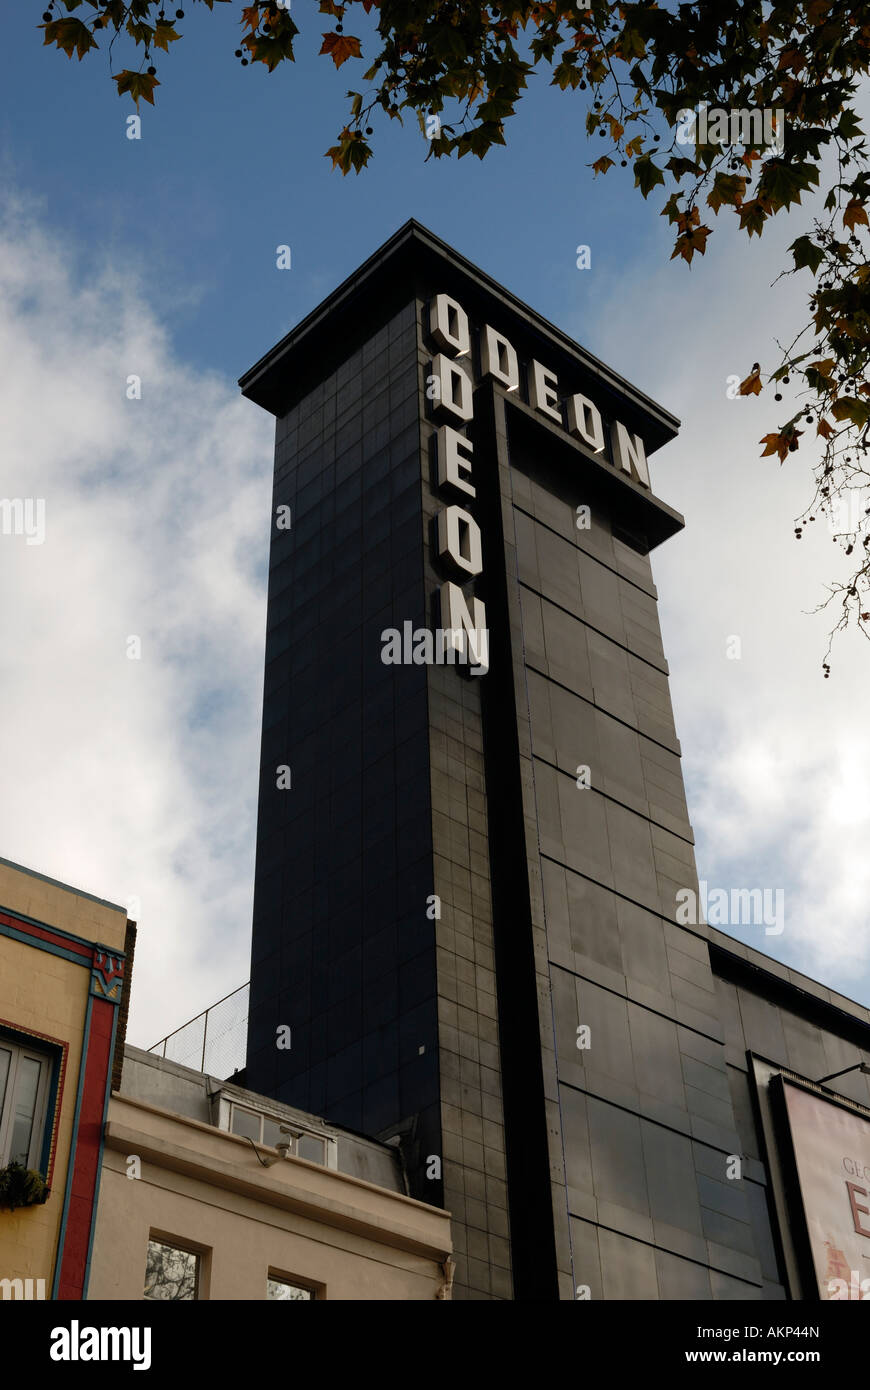 Odeon Cinema Leicester Square London England UK - Stock Image